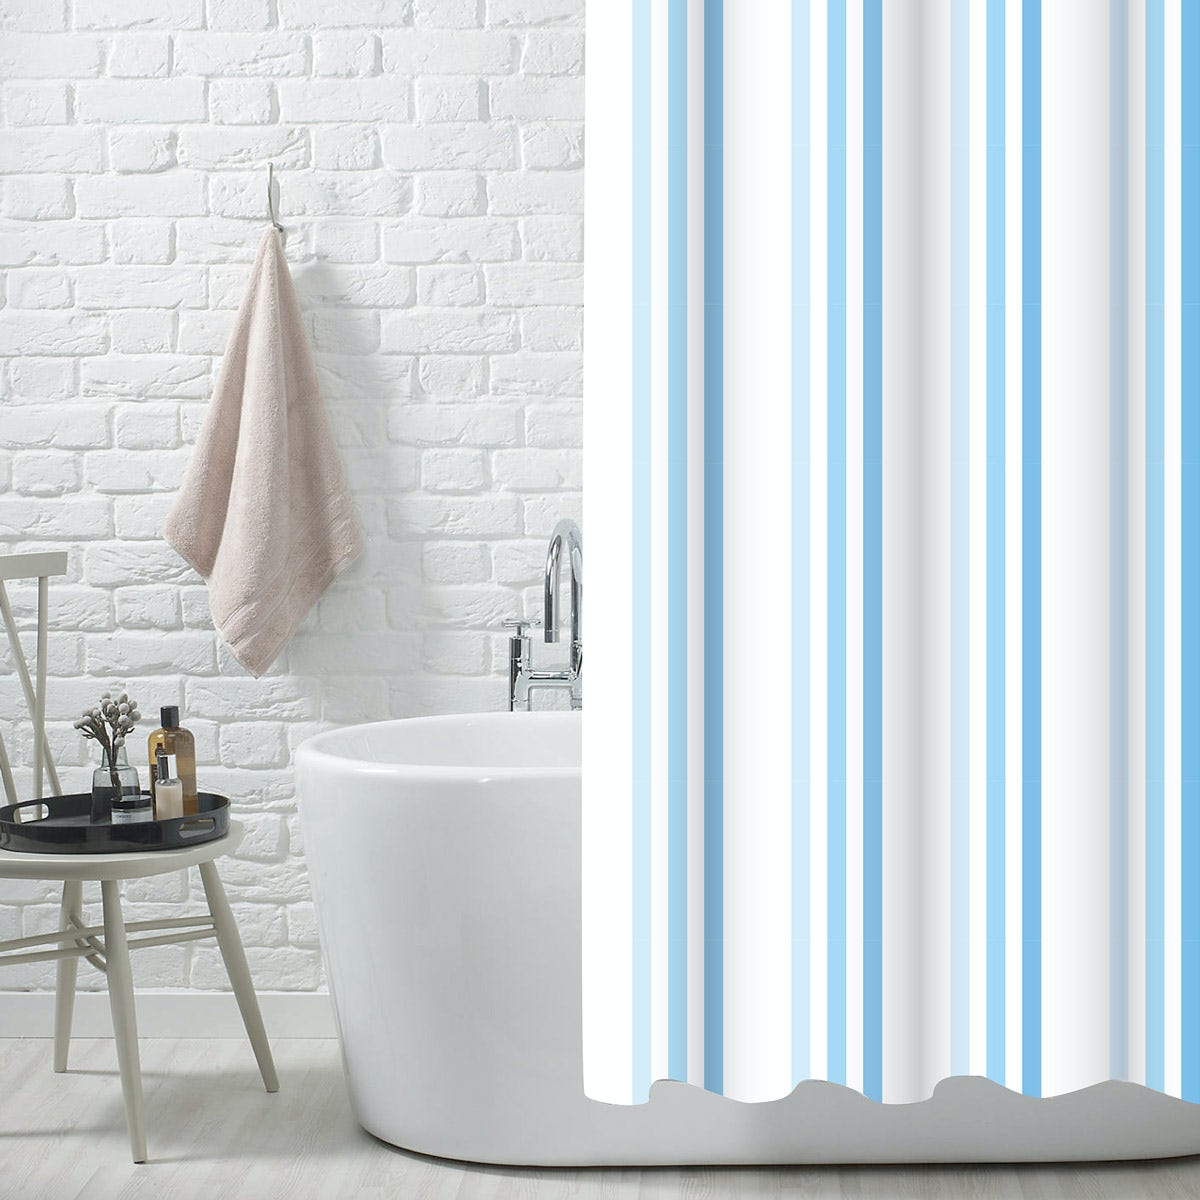 Showerdrape Brighton rock blue polyester shower curtain